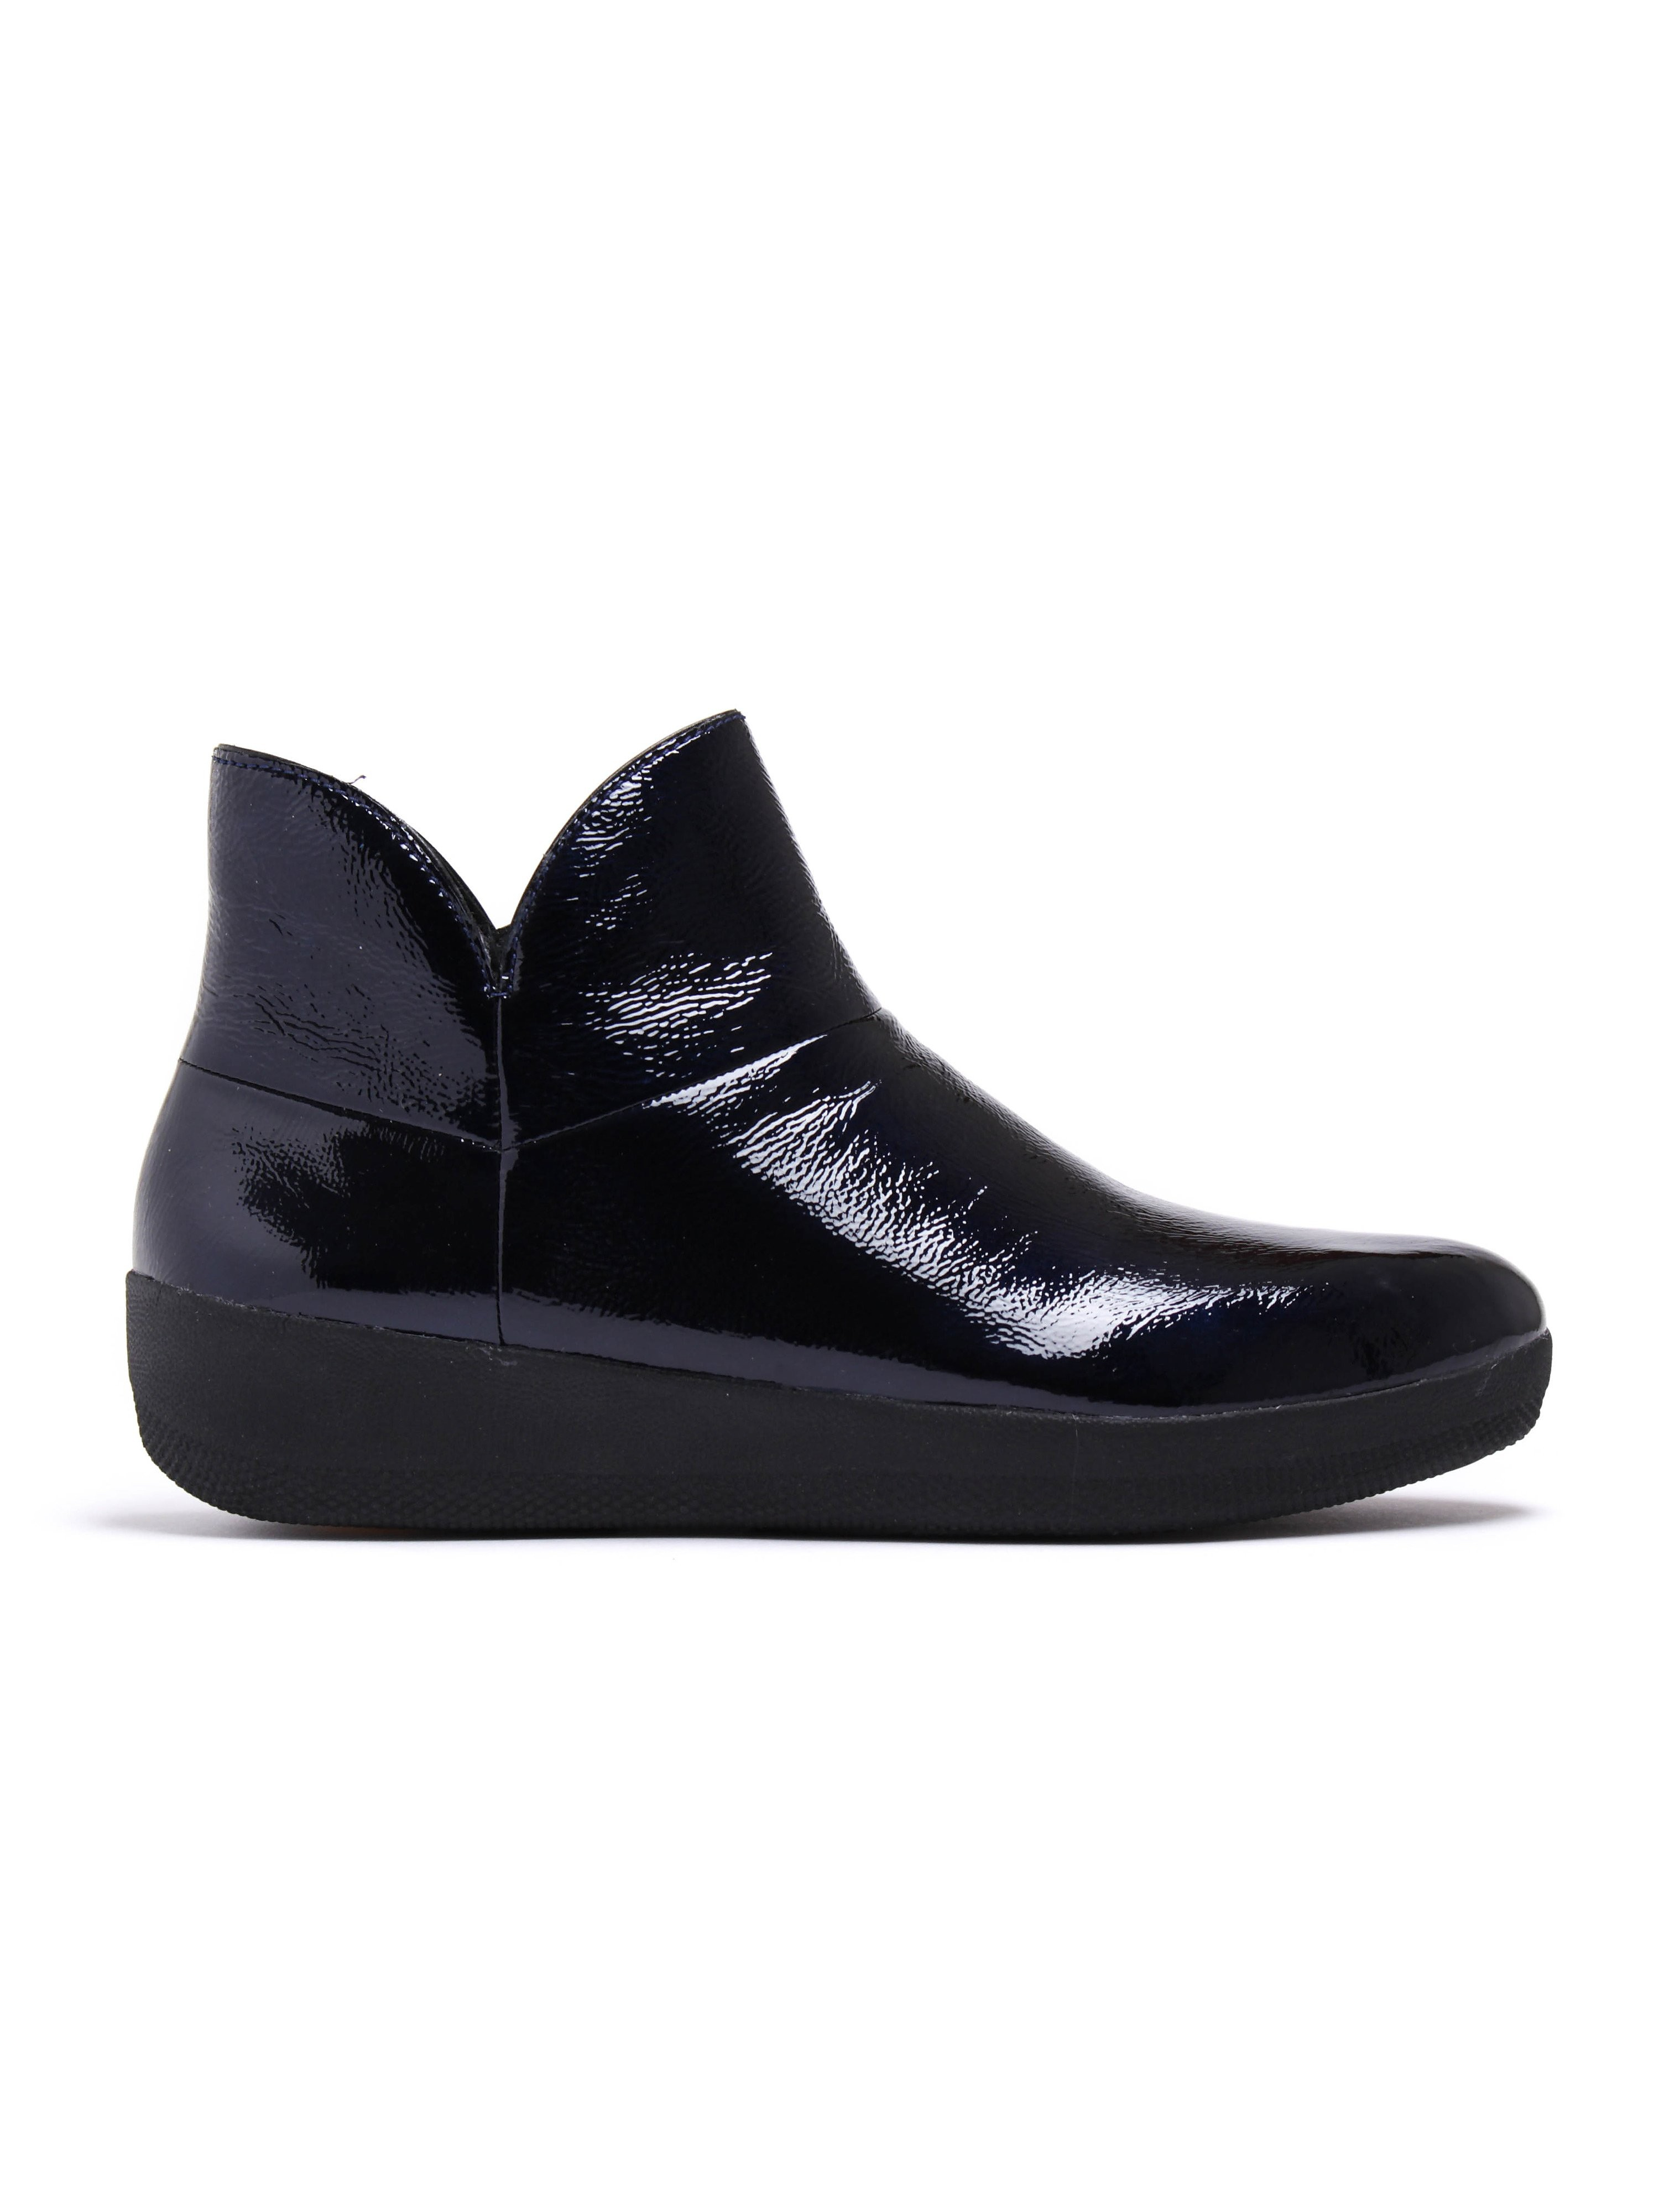 FitFlop Supermod Patent Leather Ankle Boot - Inky